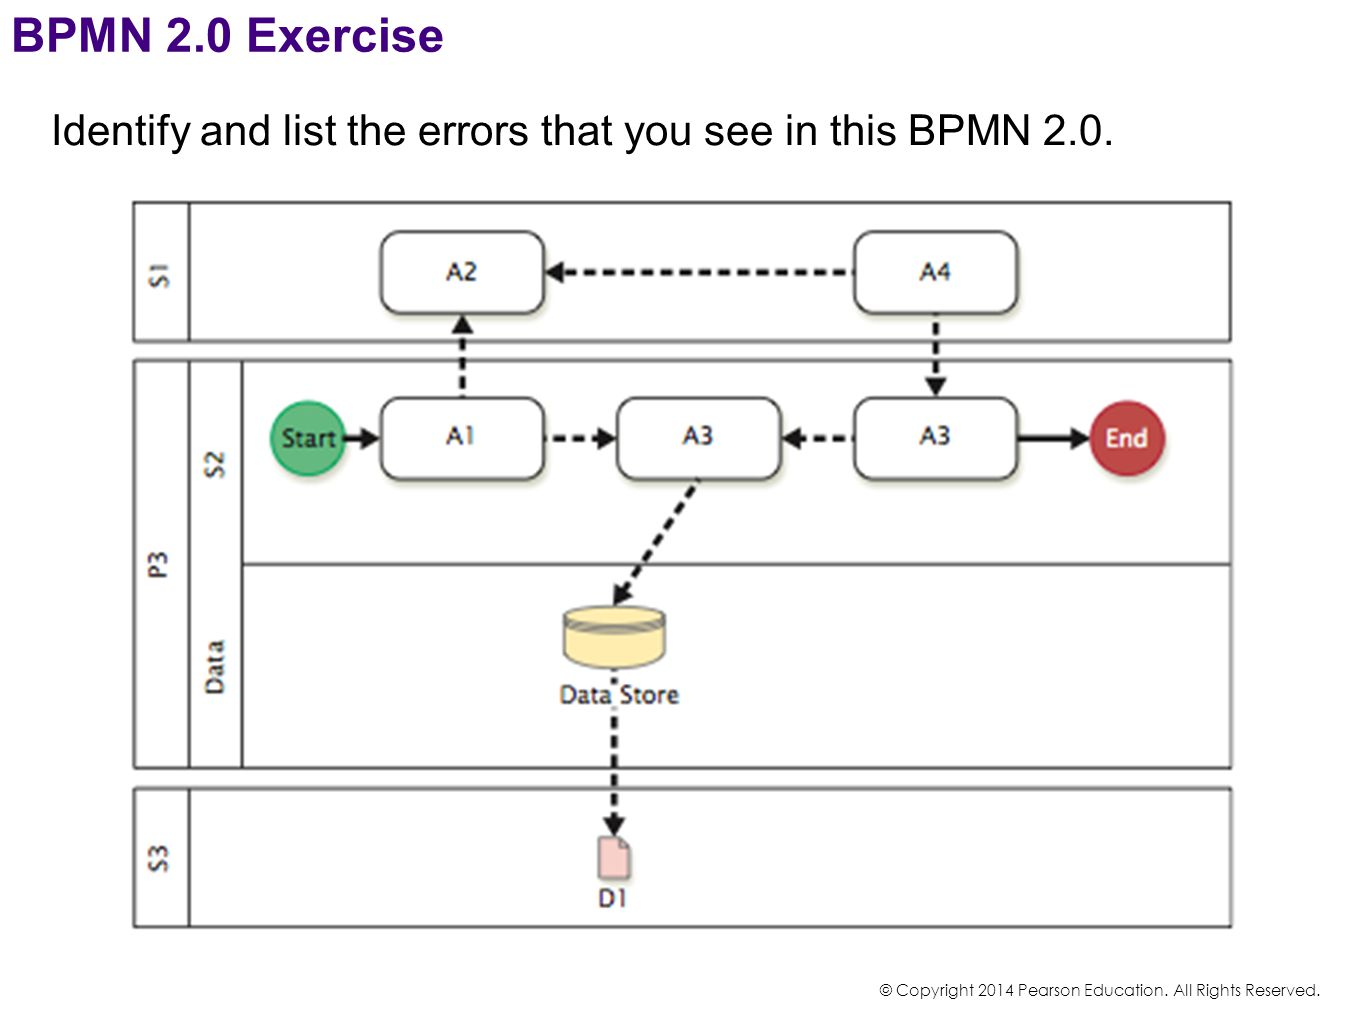 BPMN 2.0 Exercise Identify and list the errors that you see in this BPMN 2.0. How many errors can you identify in this DFD